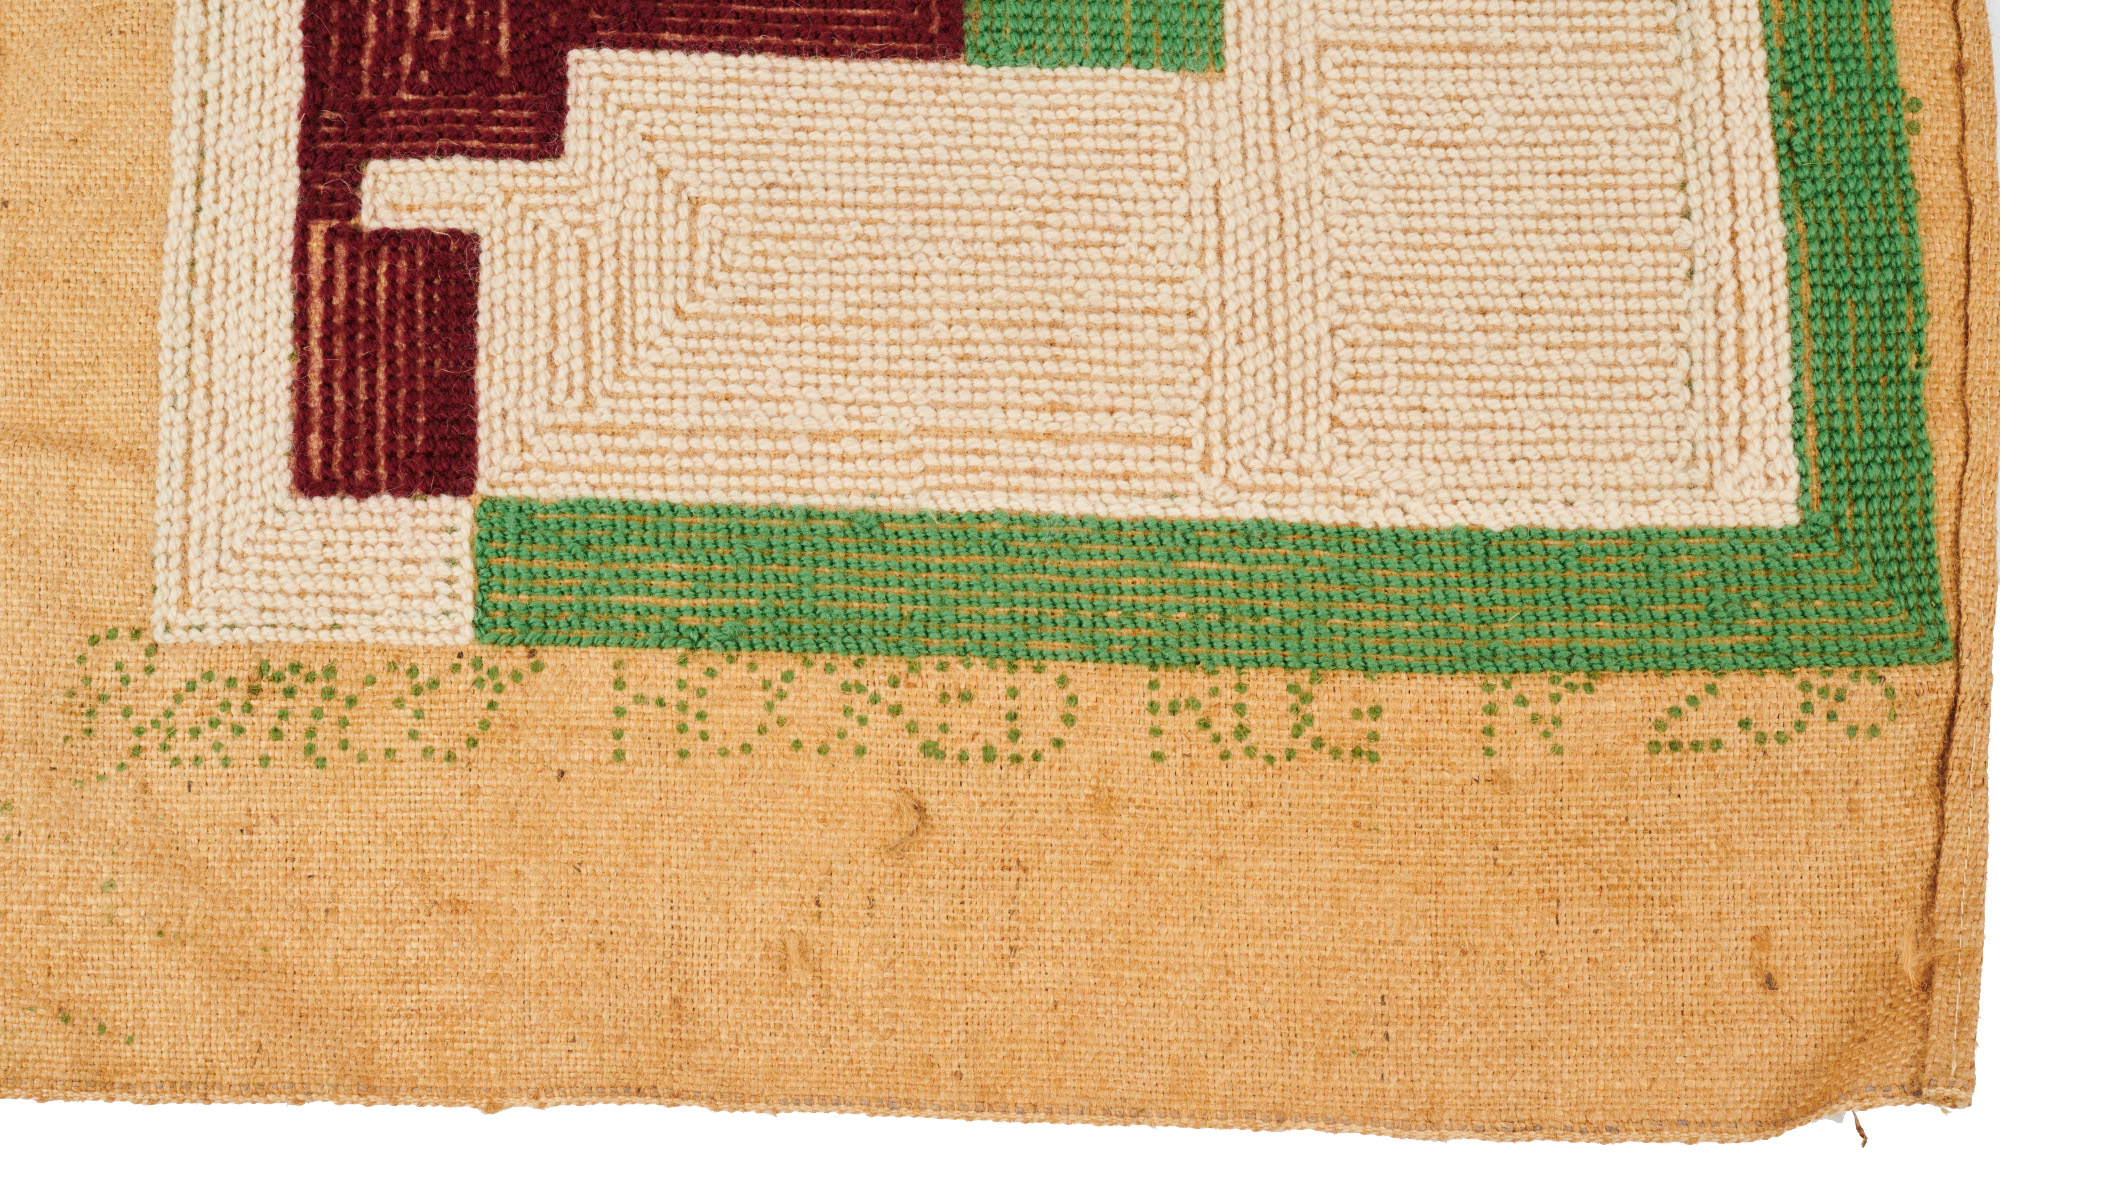 Coote rug 1940 Semco template